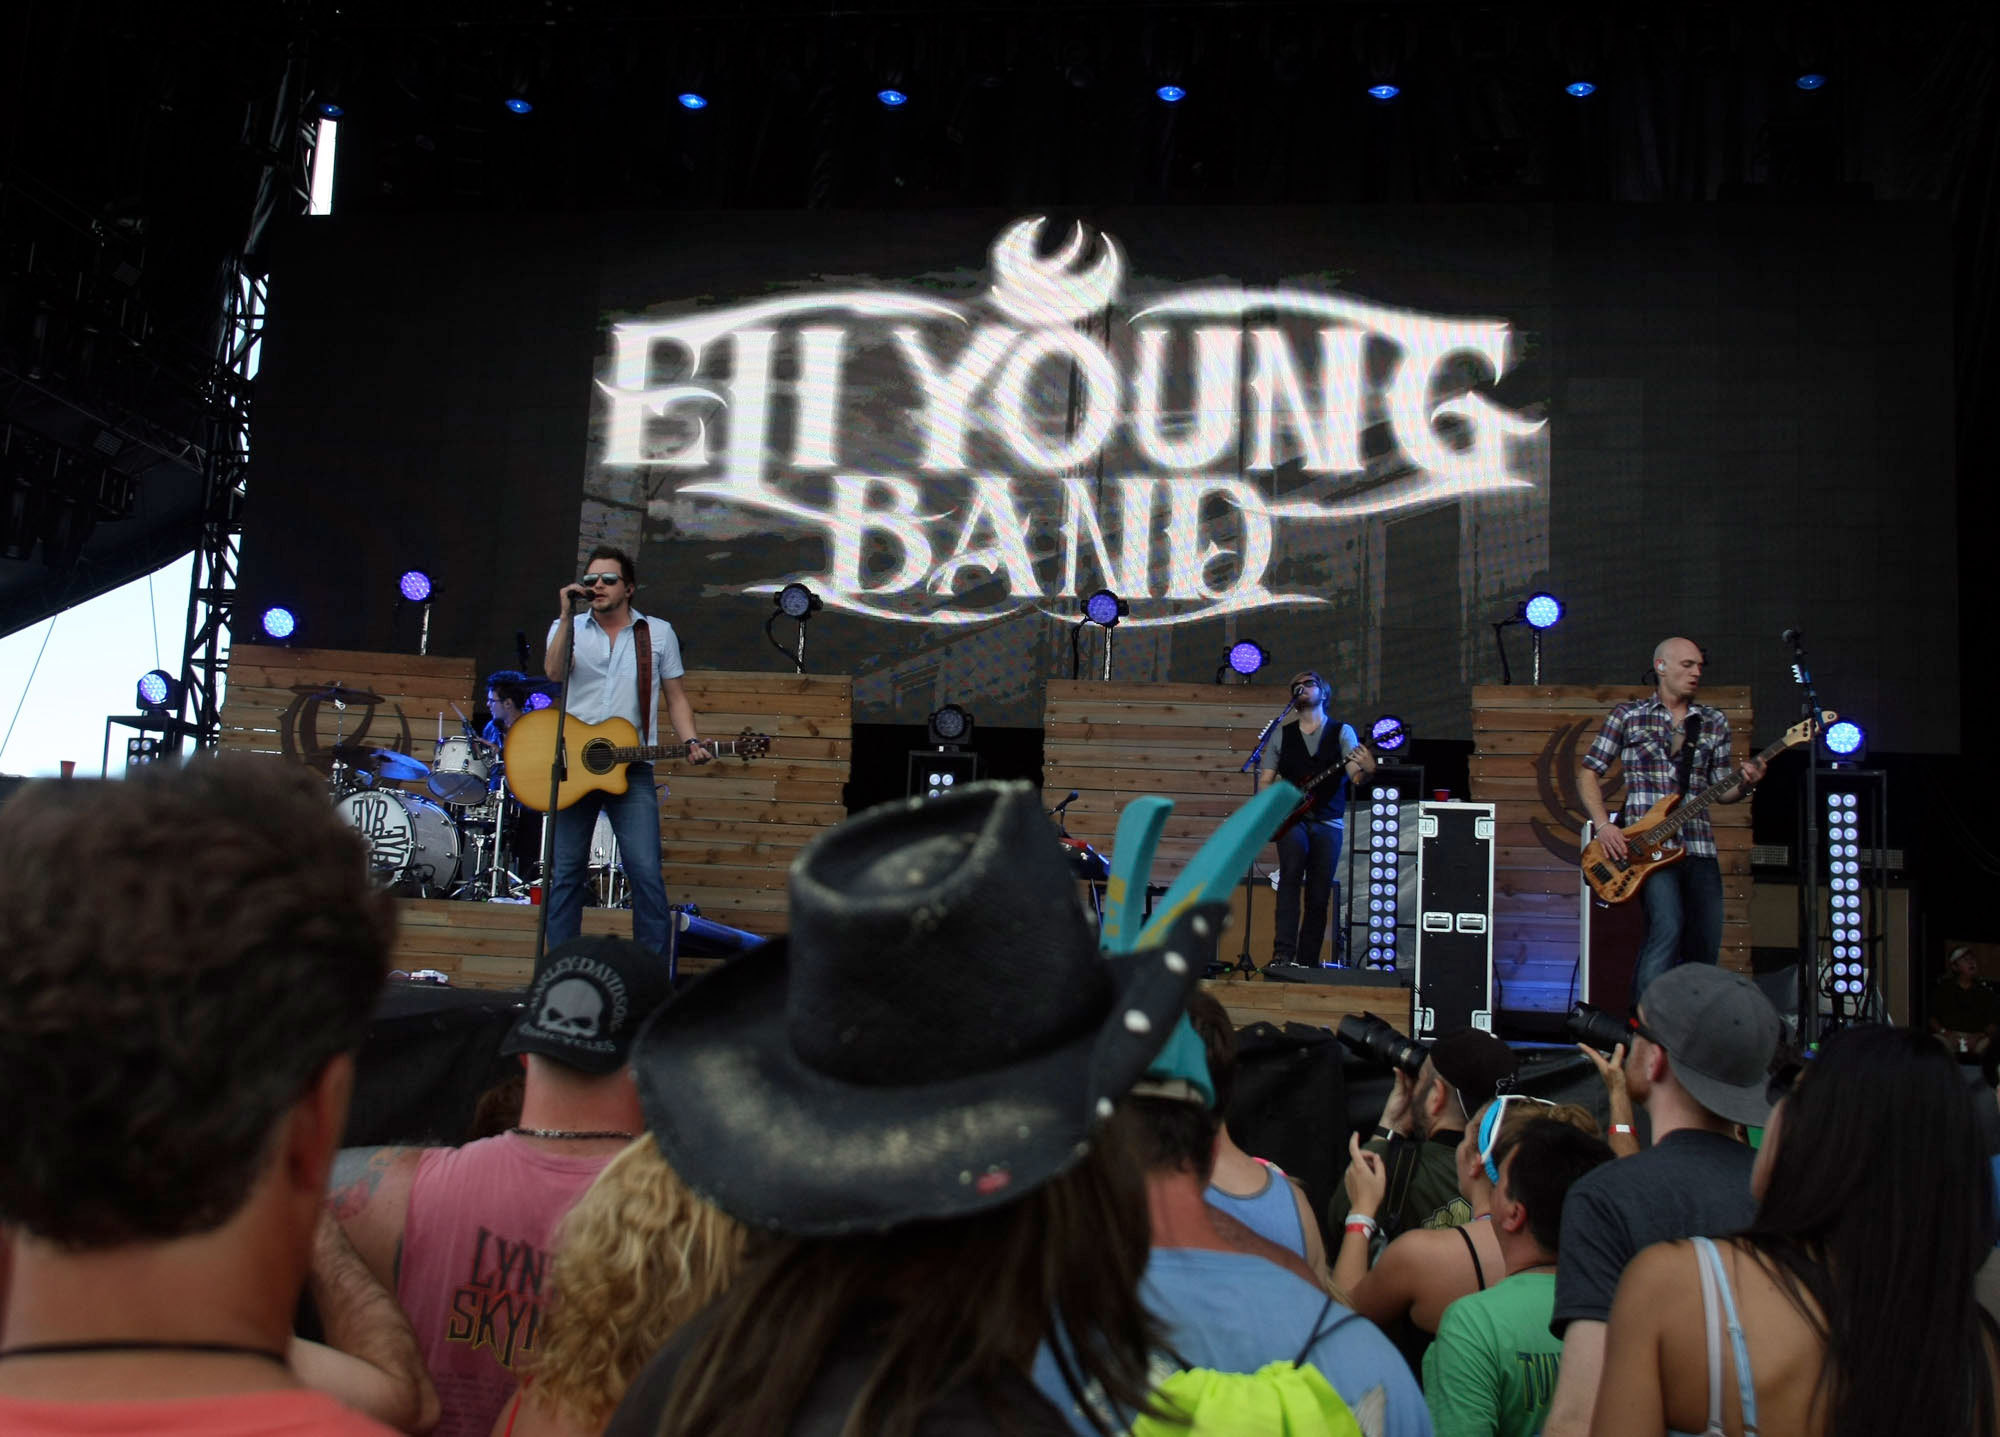 PHOTOS: 2013 Tortuga Music Festival - Eli Young Band